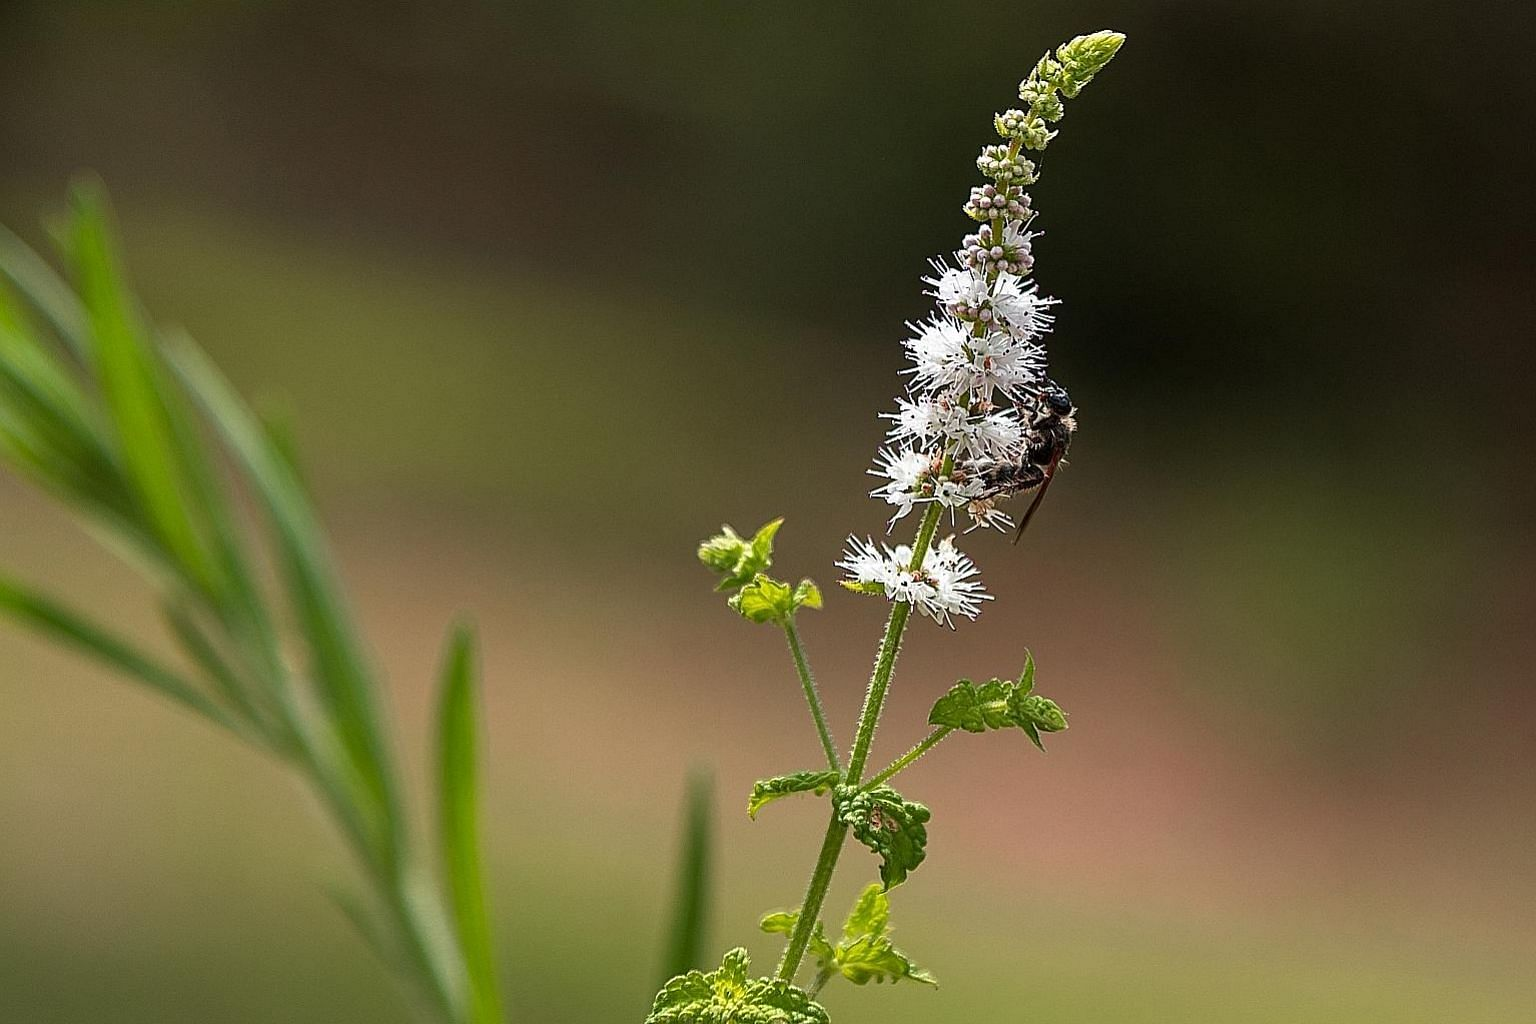 Researchers are unable to determine whether black cohosh, which is found in treatments for hot flushes, improves menopausal symptoms.